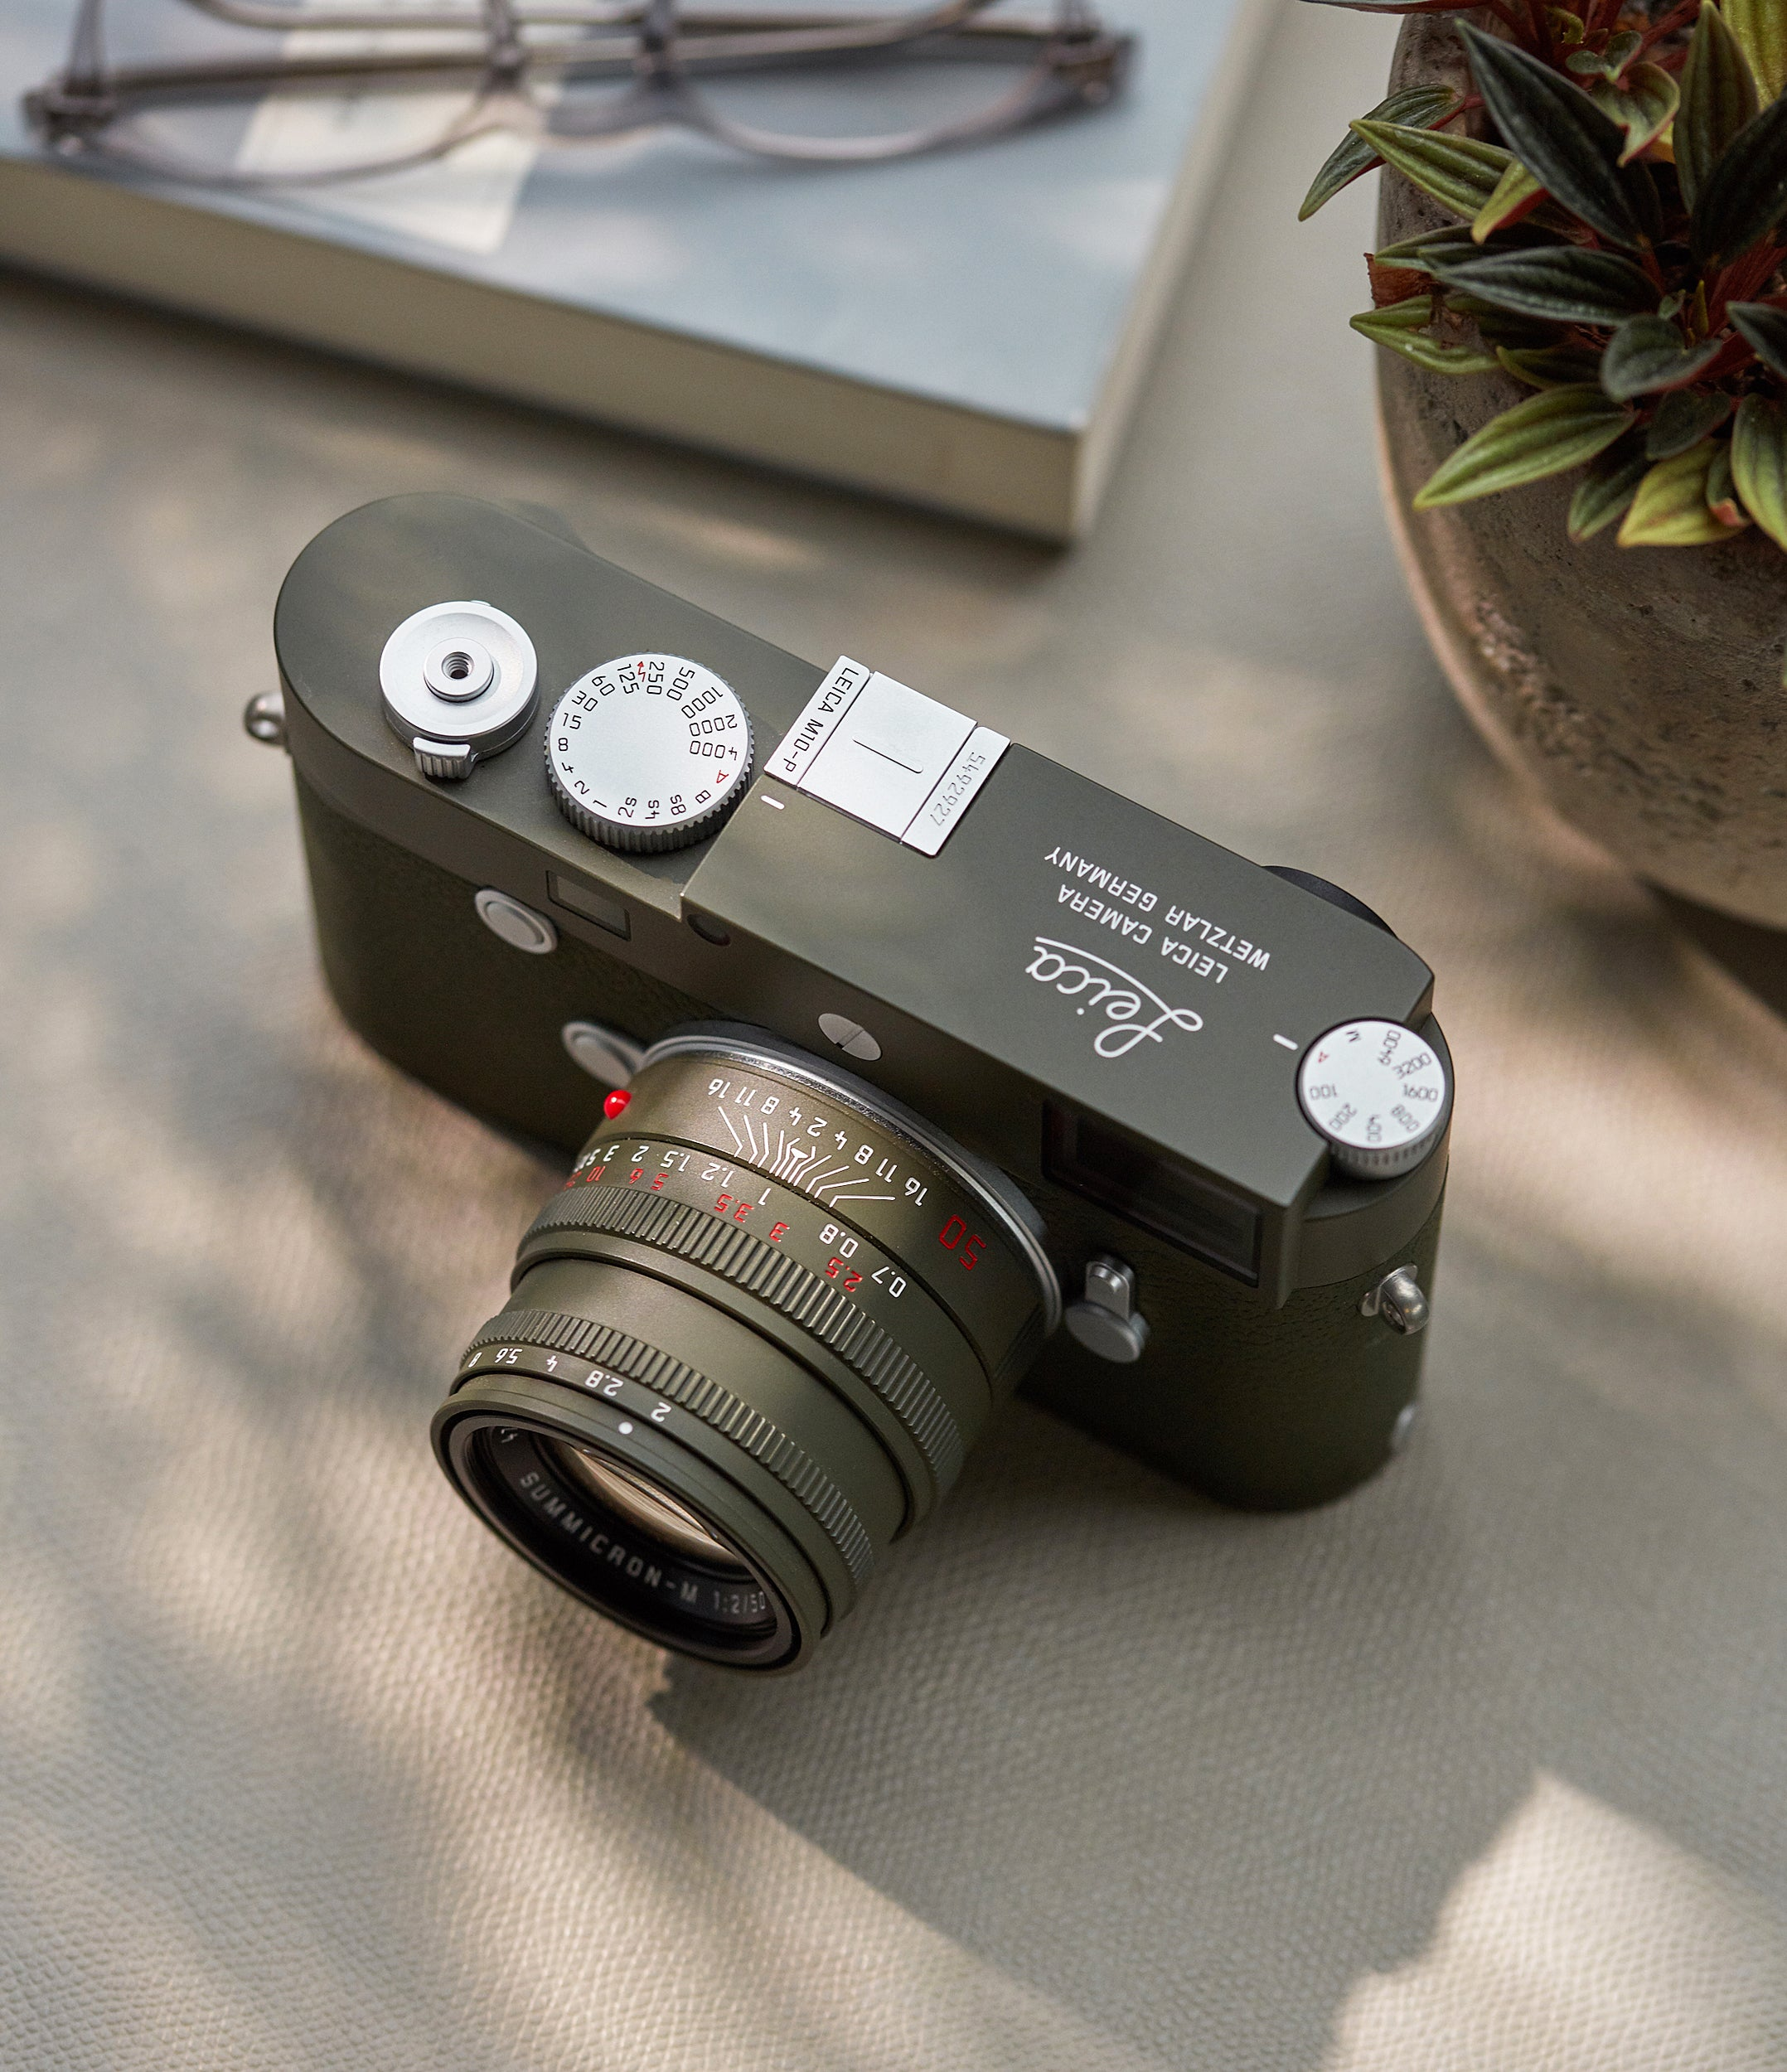 M10-P 'Safari Edition' camera | body and lens